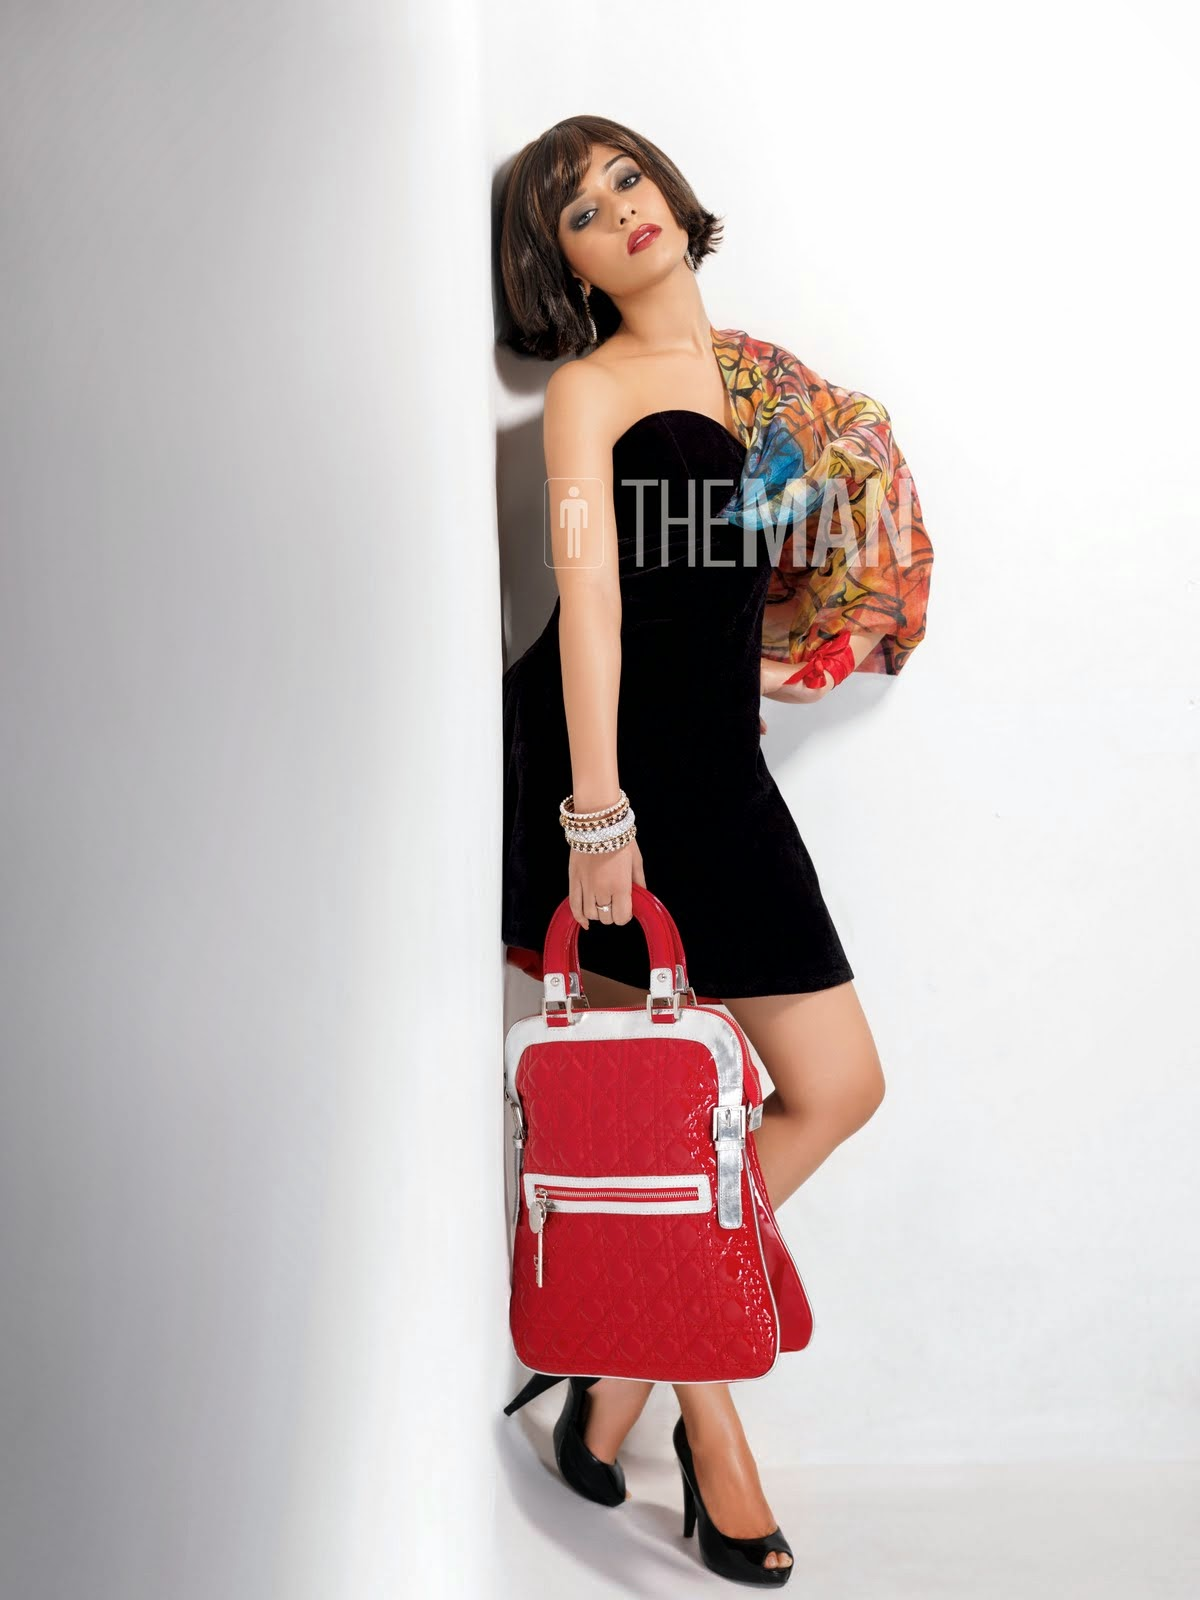 Amrita Rao The Man Magazine Strapless Silky Black Dress with red purse